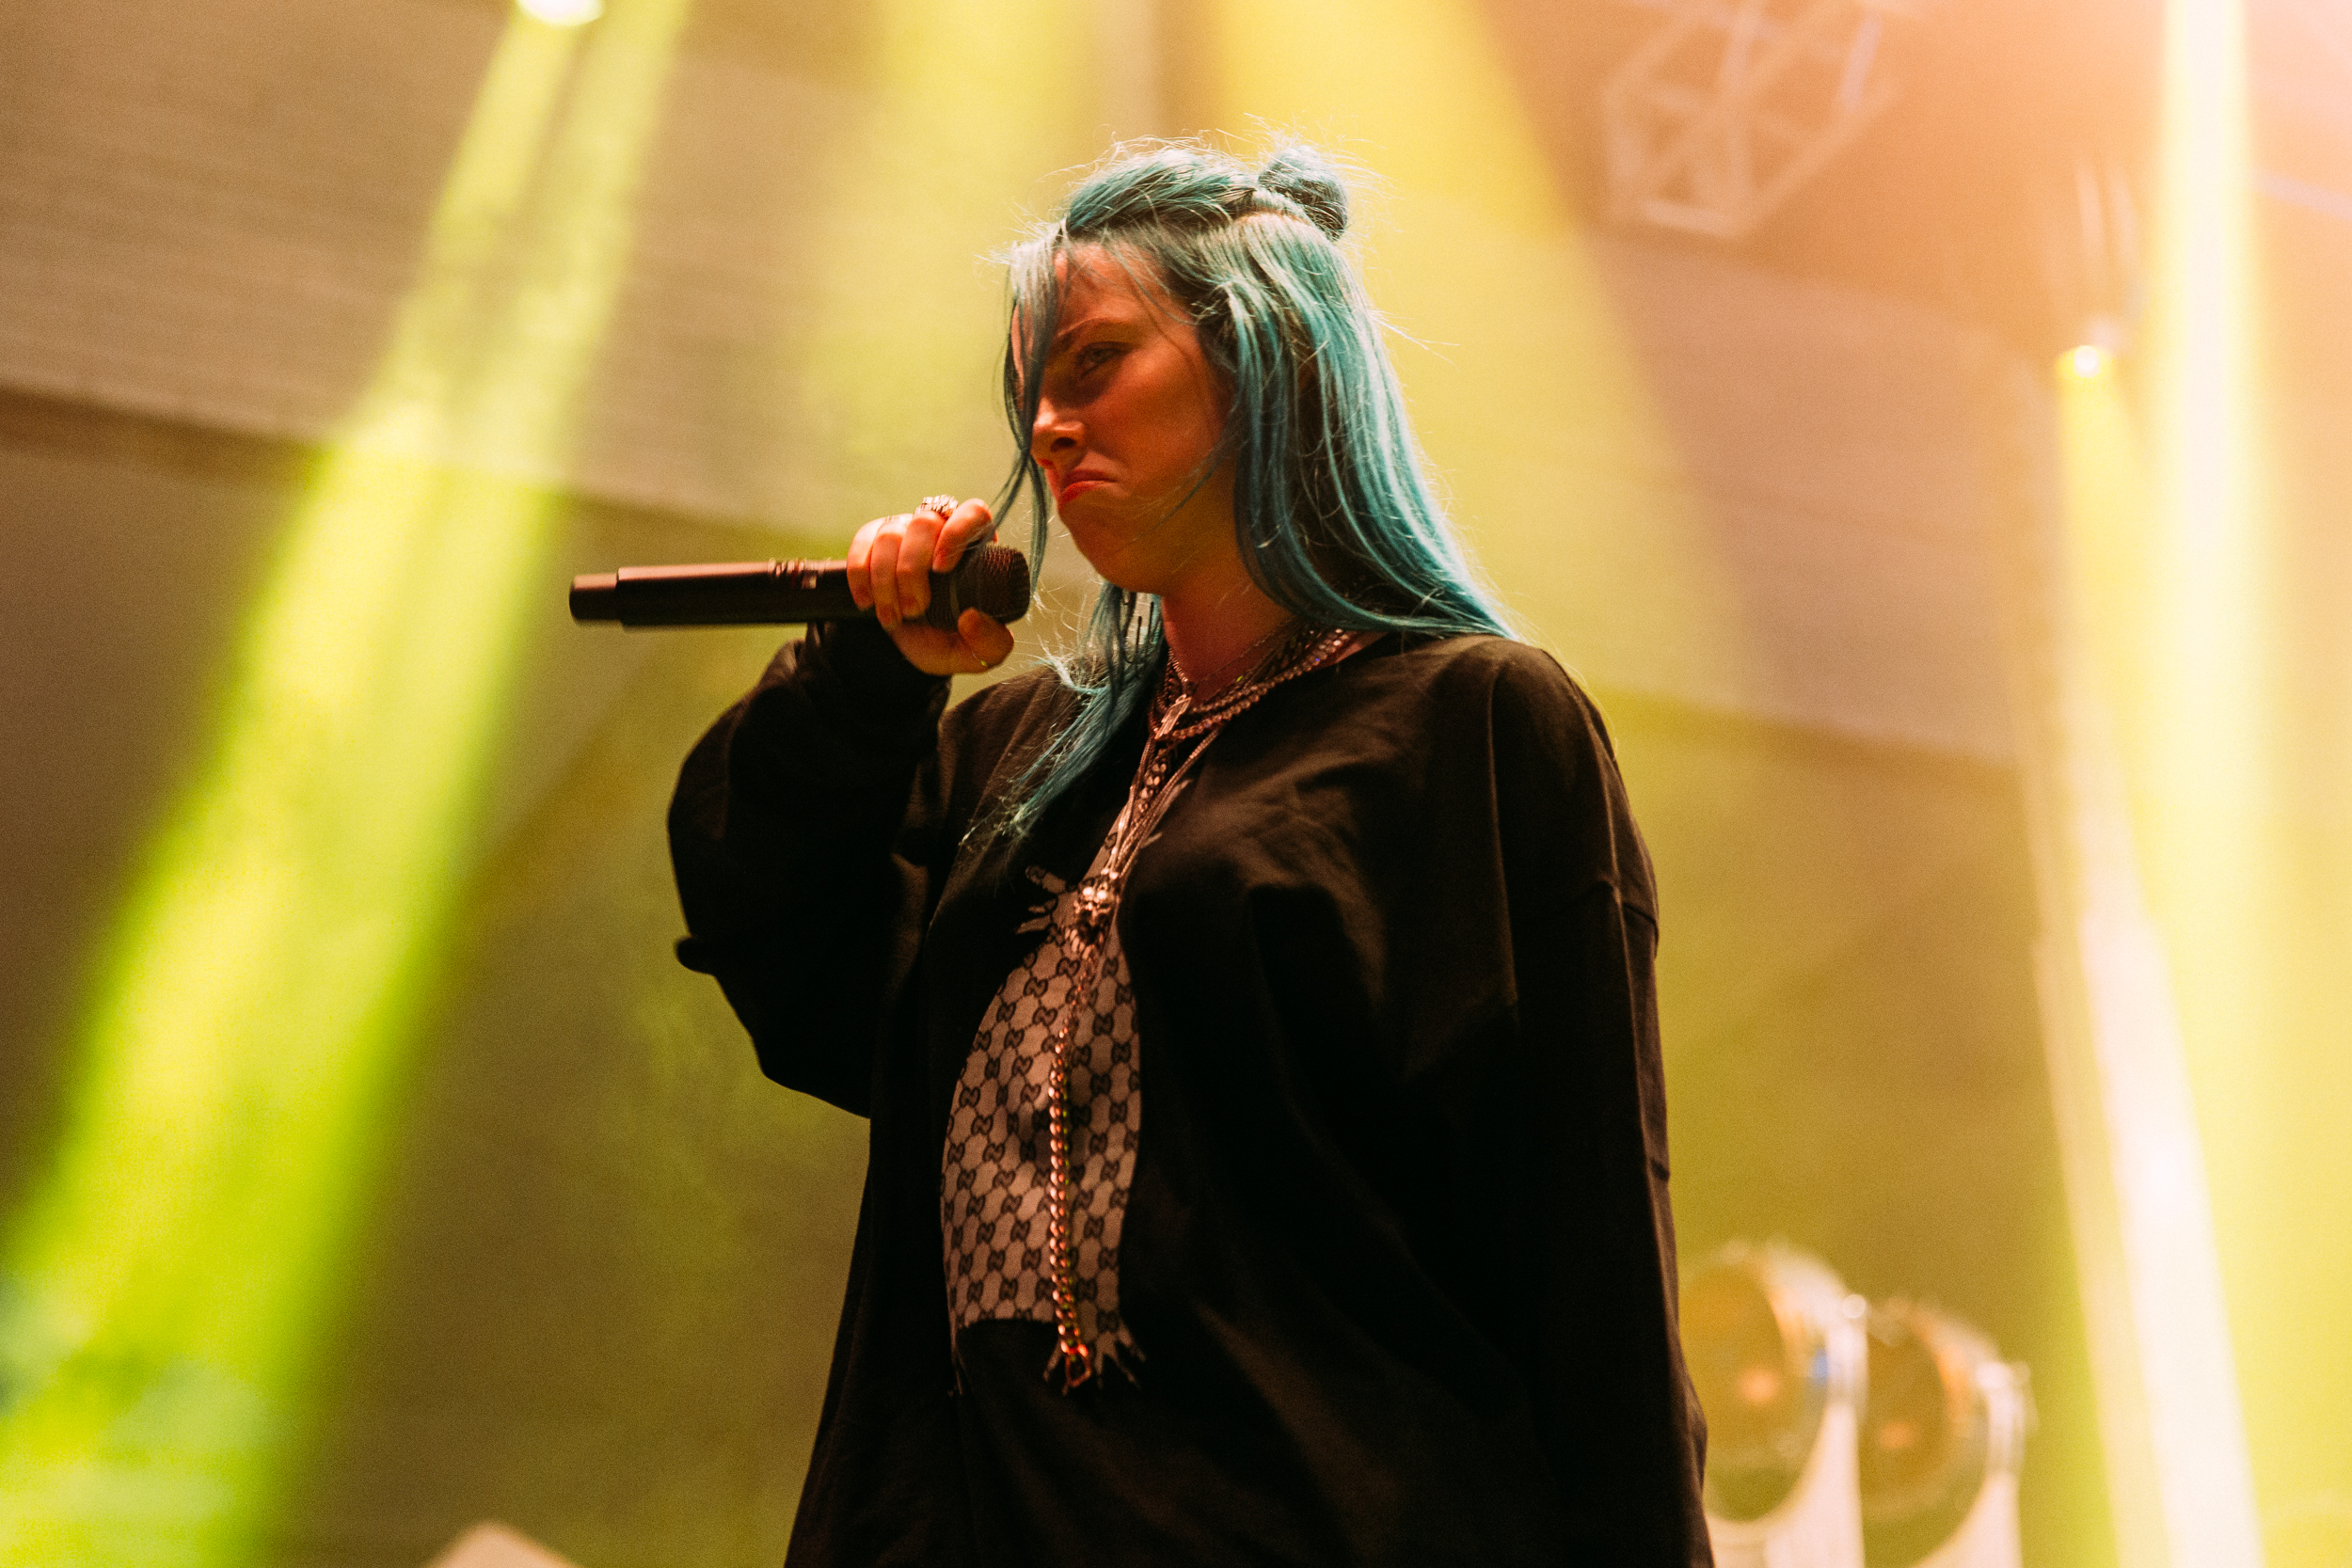 Billie Eilish at the 2018 All Things Go Fall Classic (Photo by Mauricio Castro)